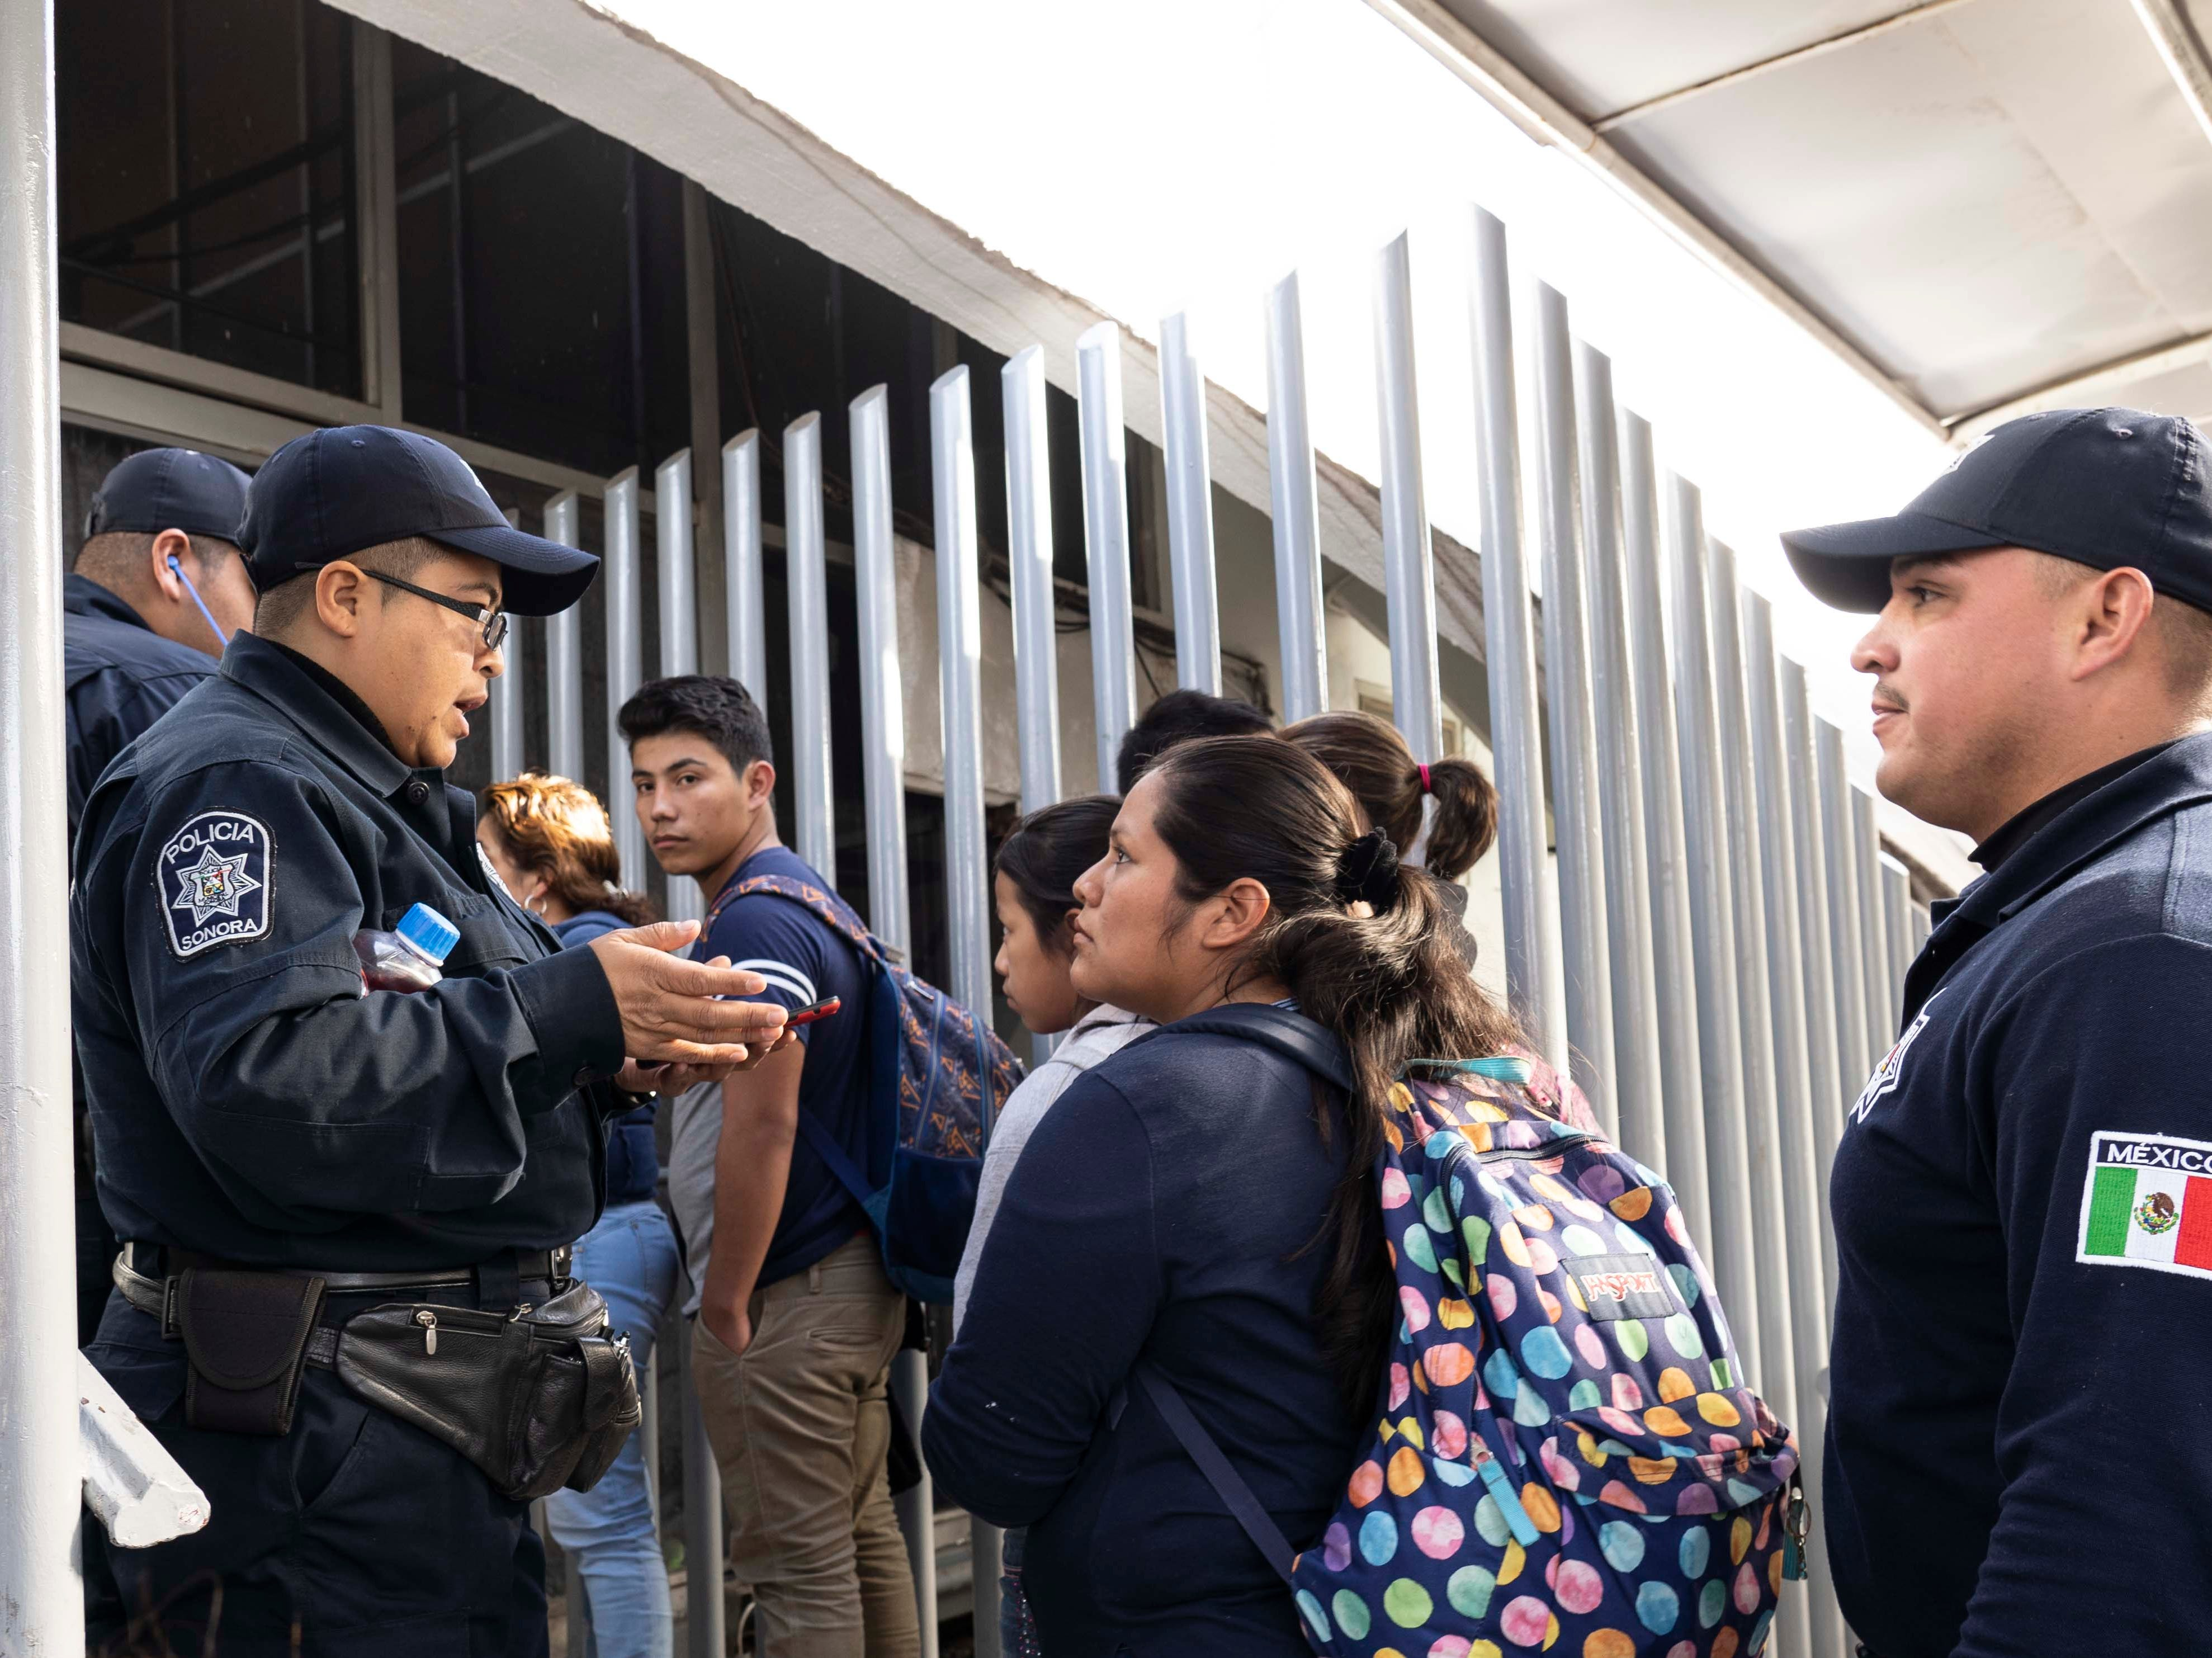 Migrants arrive at Mexican Immigration in Sonora, Mexico after being deported from the United States on Jan. 18, 2019.